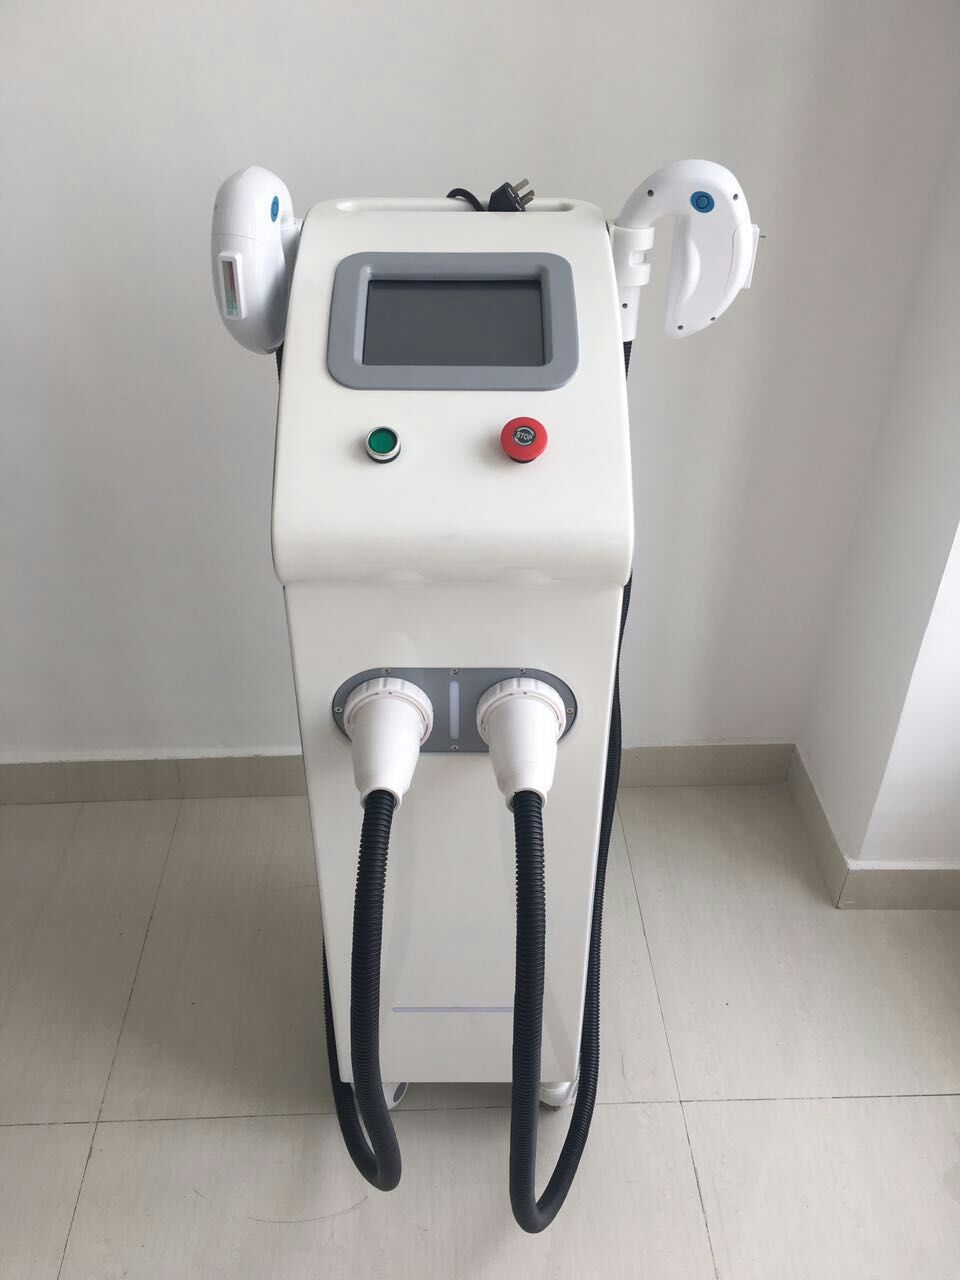 OPT Laser Hair Removal and Skin Rejuvenating Equipment (Double Handles)